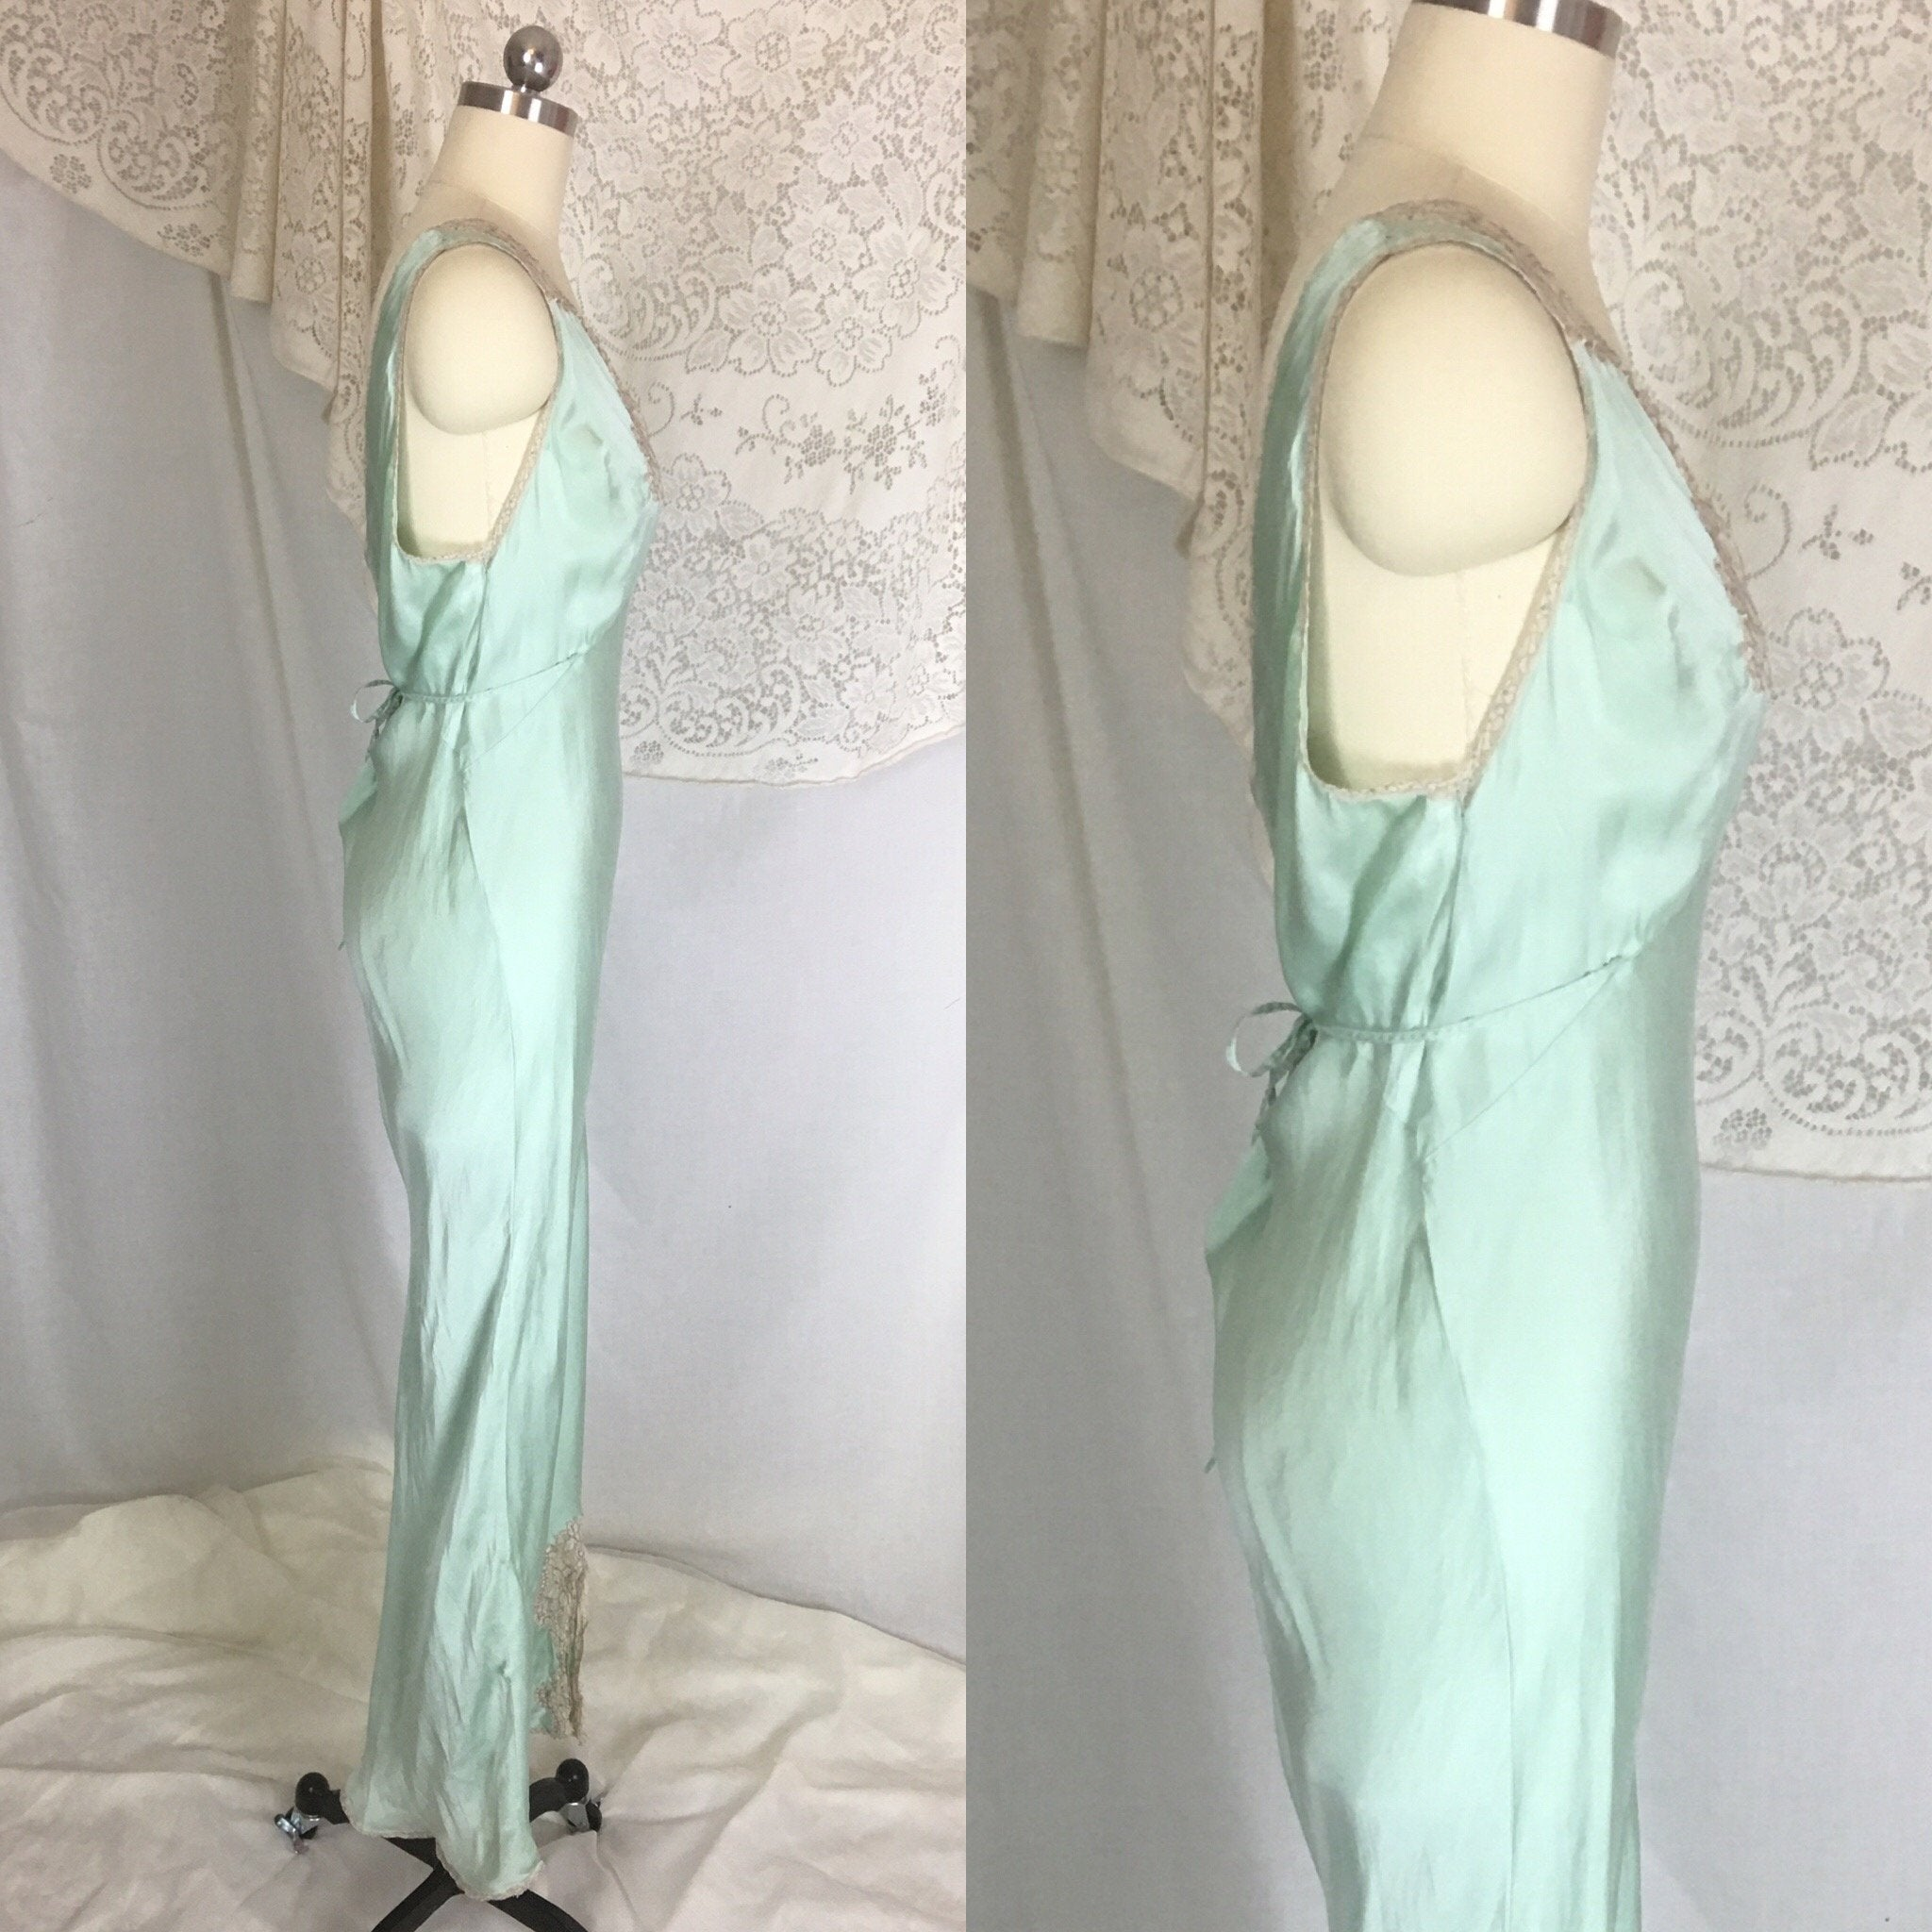 Vintage 1940's Nightgown | Seafoam Green Silk with Ivory Lace | Ro Jene | Size MED - Daggers & Dames